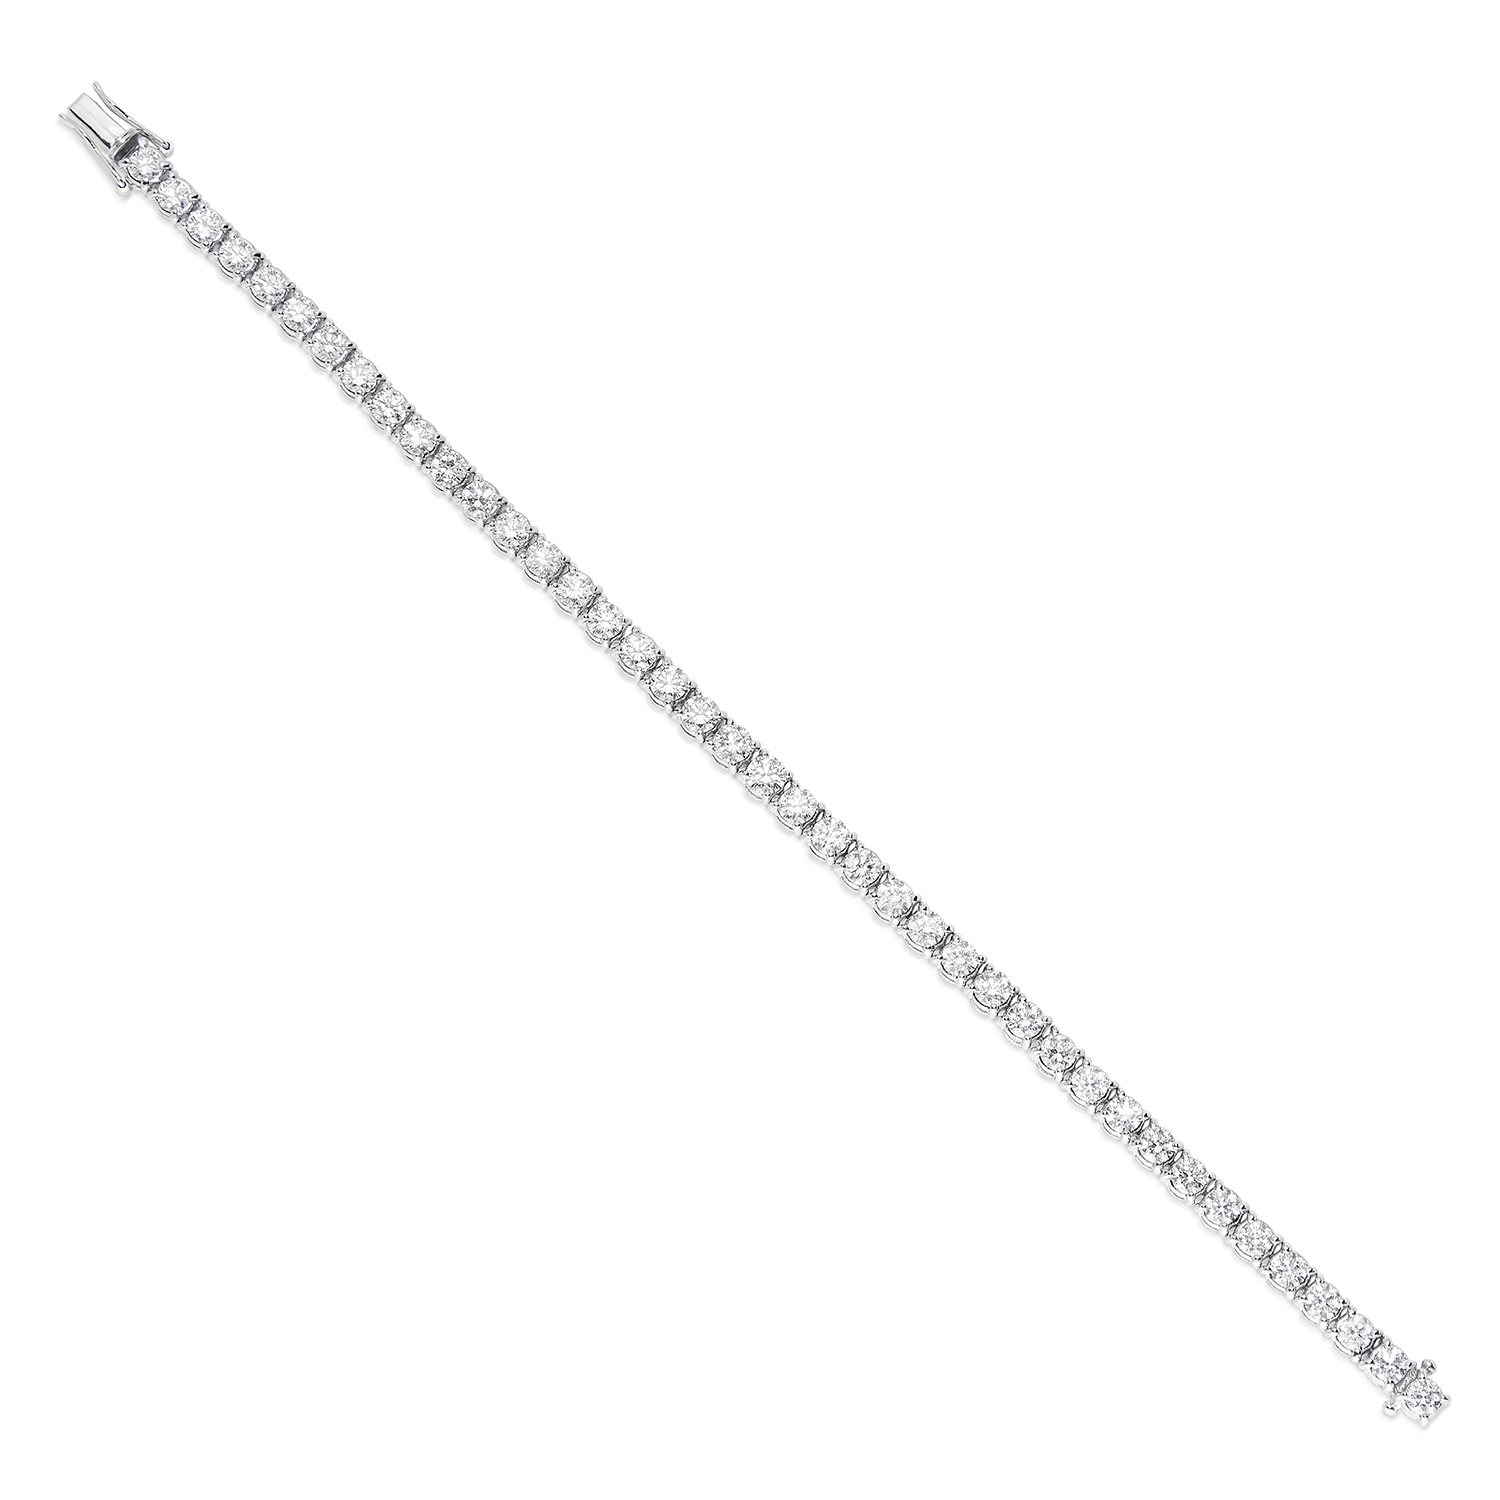 11.00 CARAT DIAMOND LINE BRACELET in 18ct white gold, set with round cut diamonds totalling